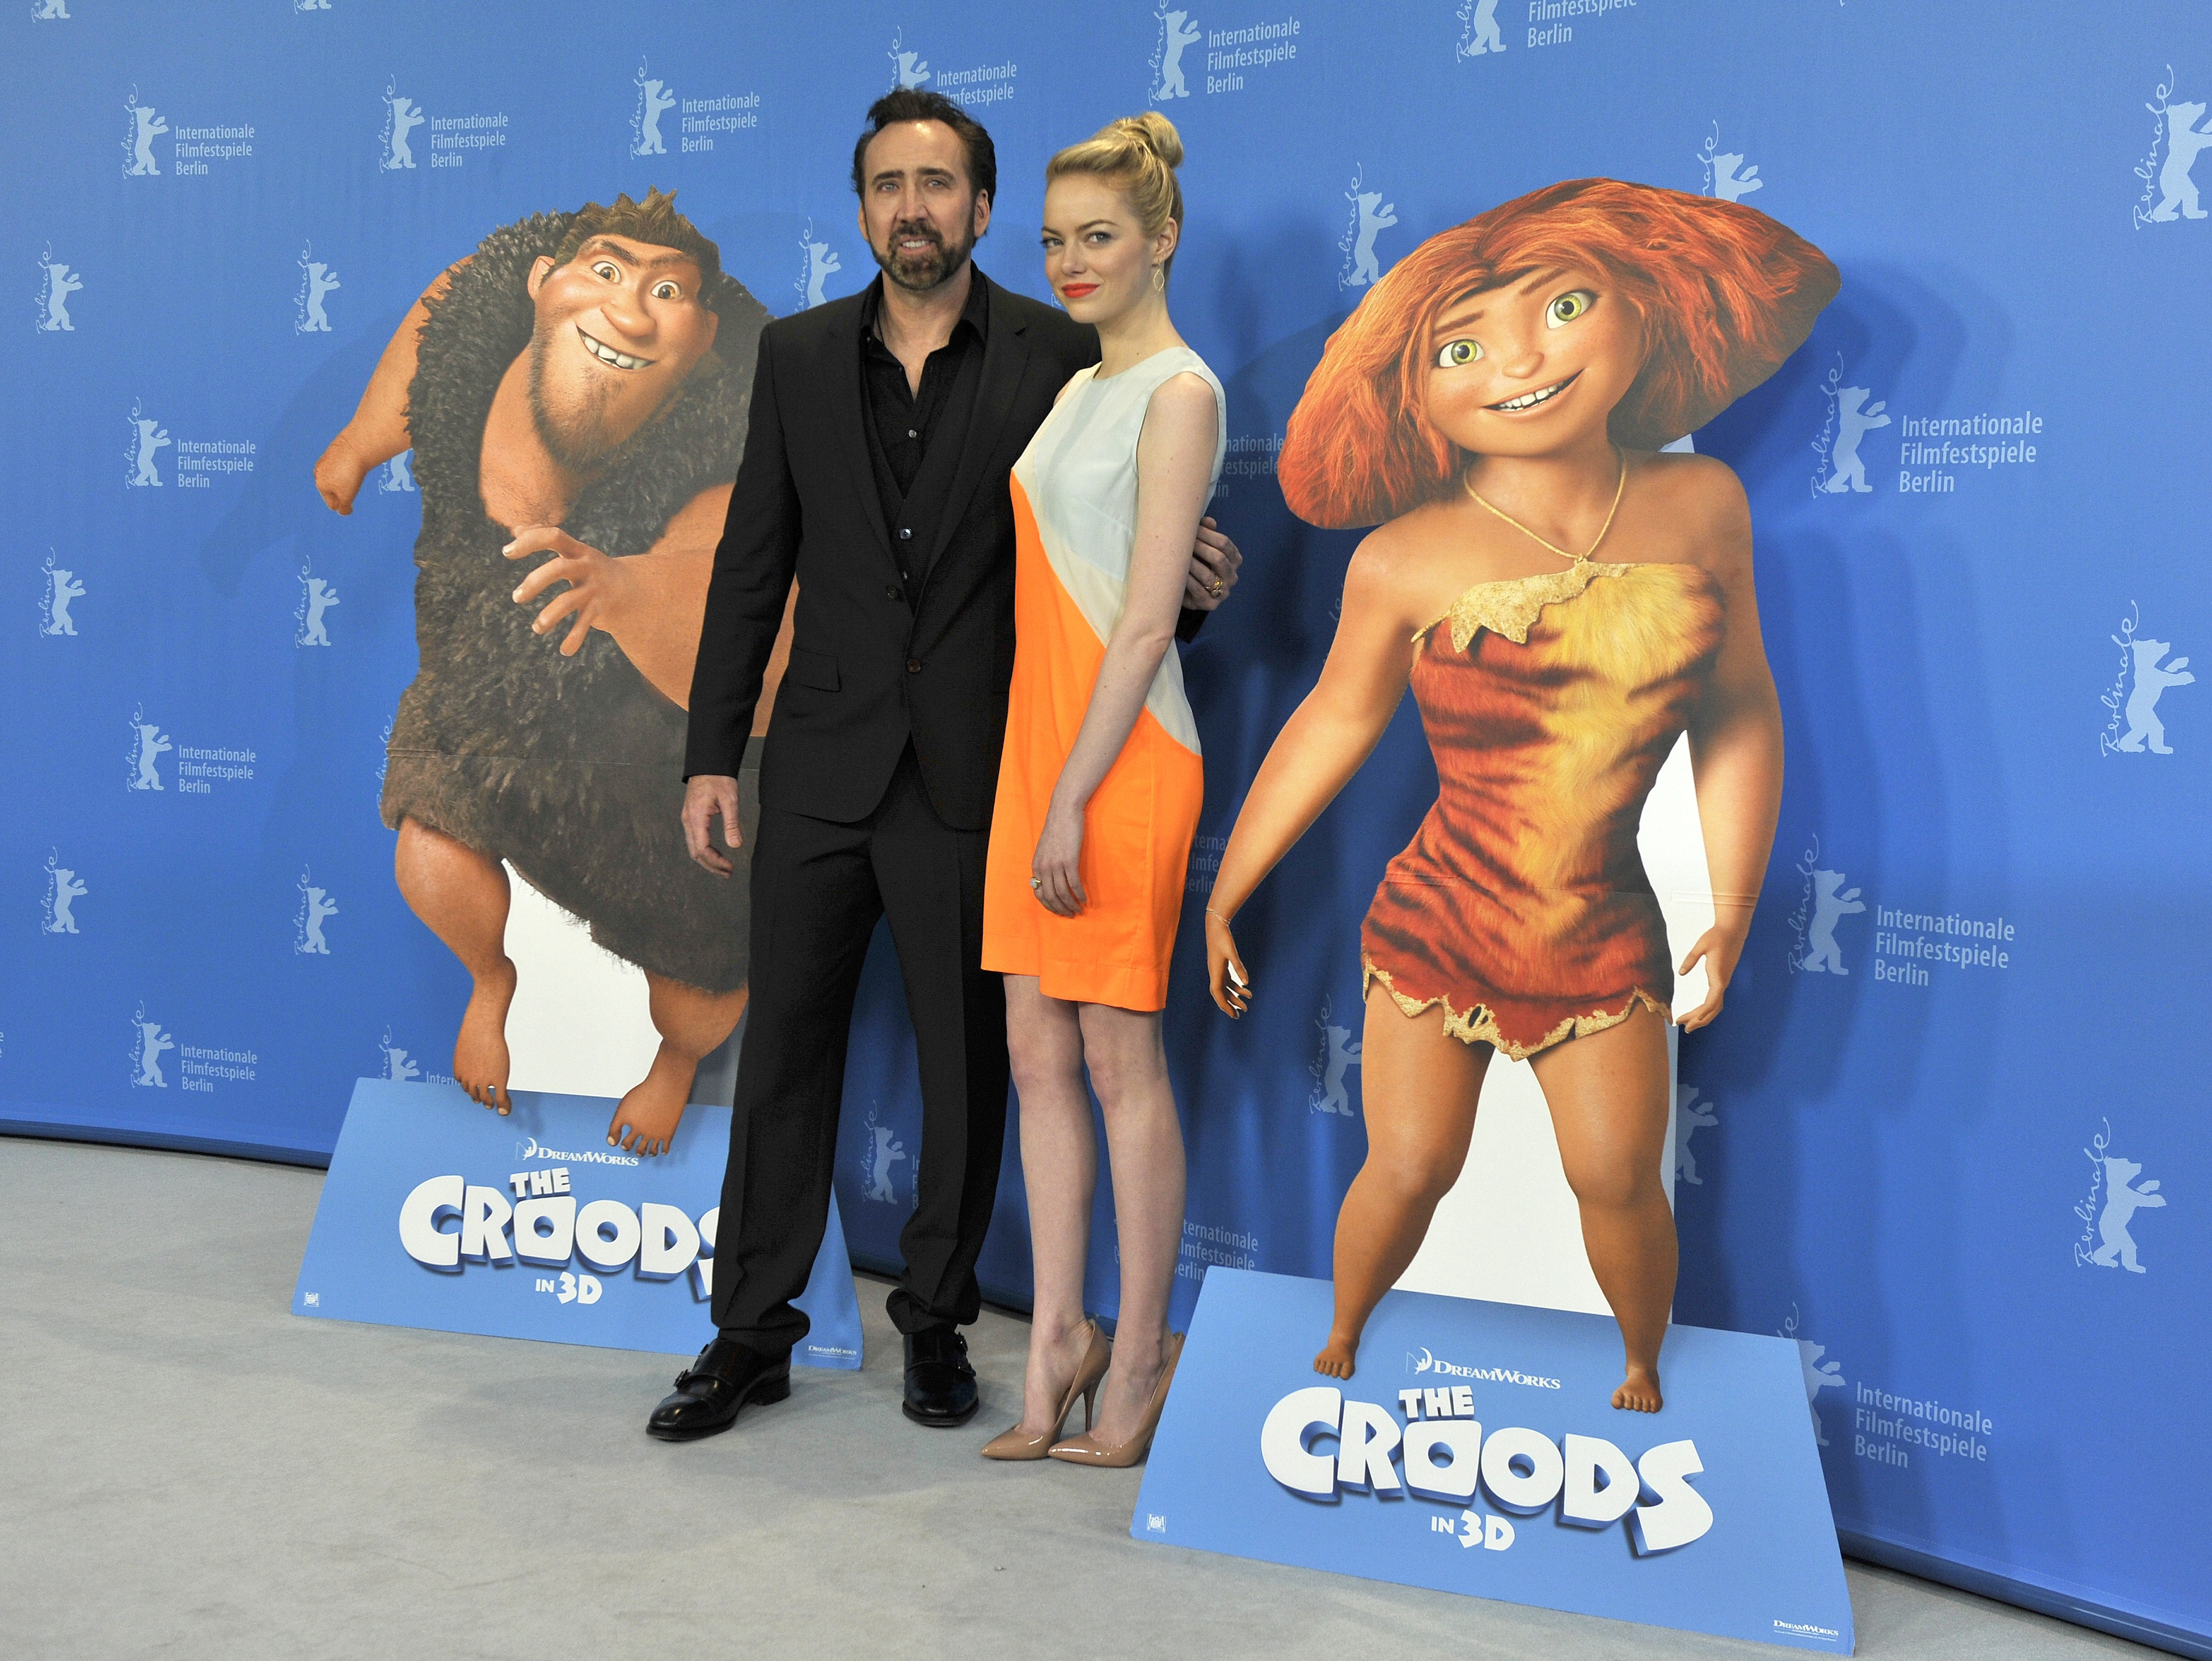 Emma Stone posed with Nicolas Cage at The Croods photocall in Berlin.